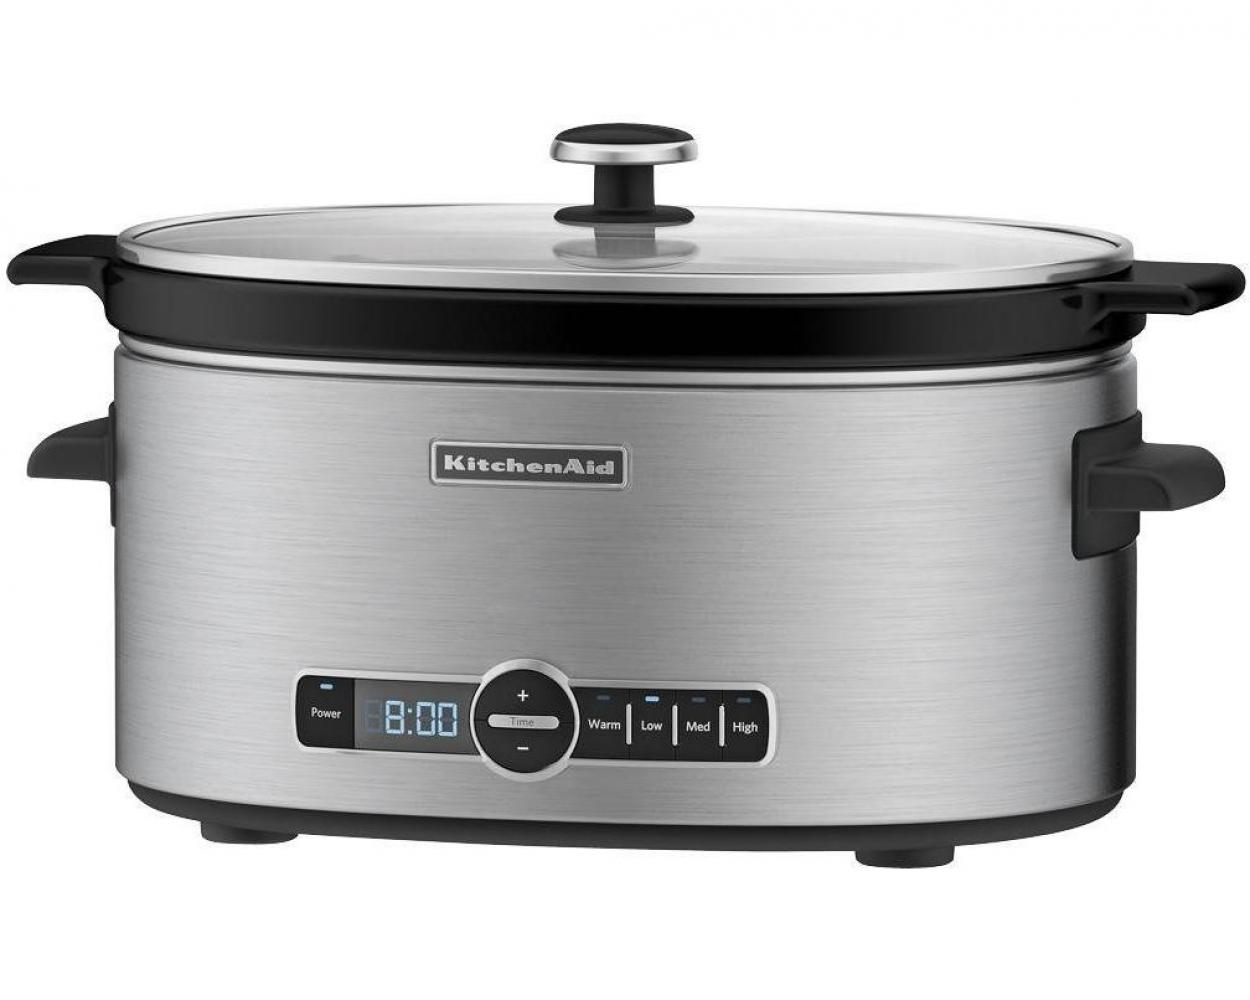 KitchenAid® 6-Quart Slow Cooker with Solid Glass Lid - Walmart.com